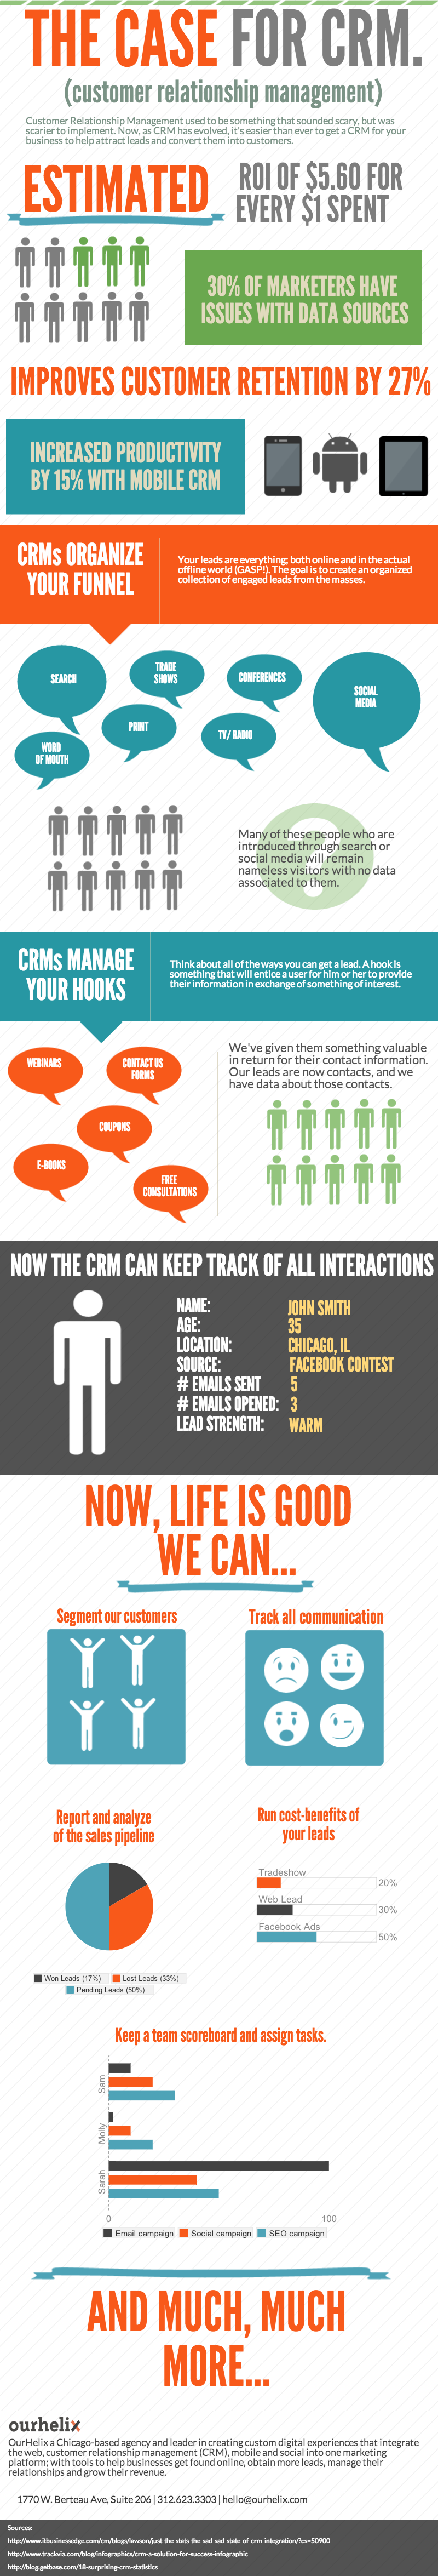 The Case for Small Business CRM [Infographic]